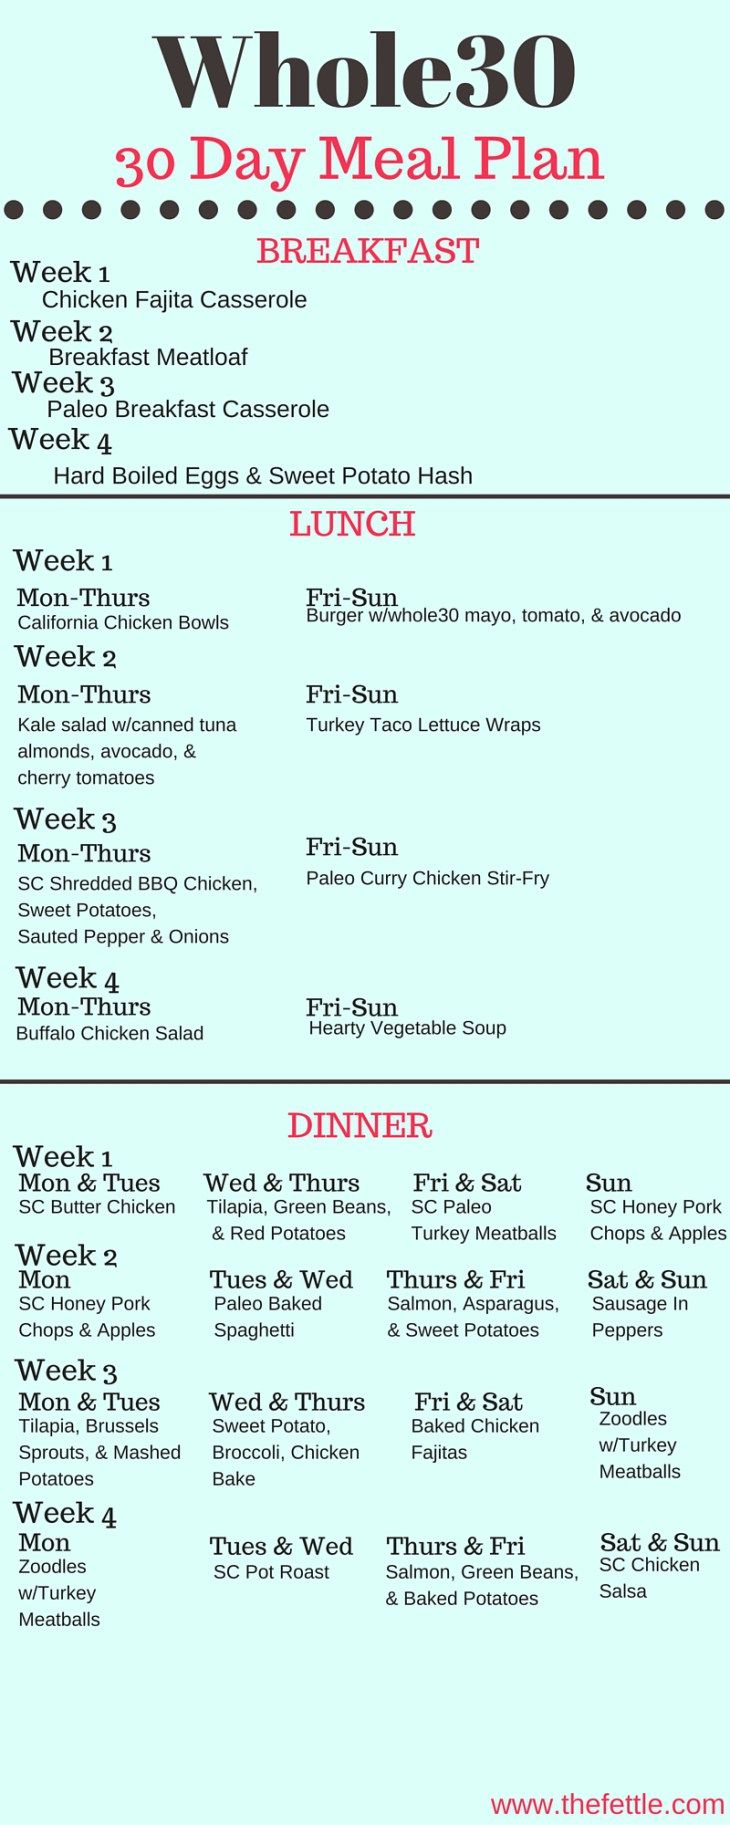 Diet Plan To Lose Weight : The Whole30 Meal Plan 30 Days